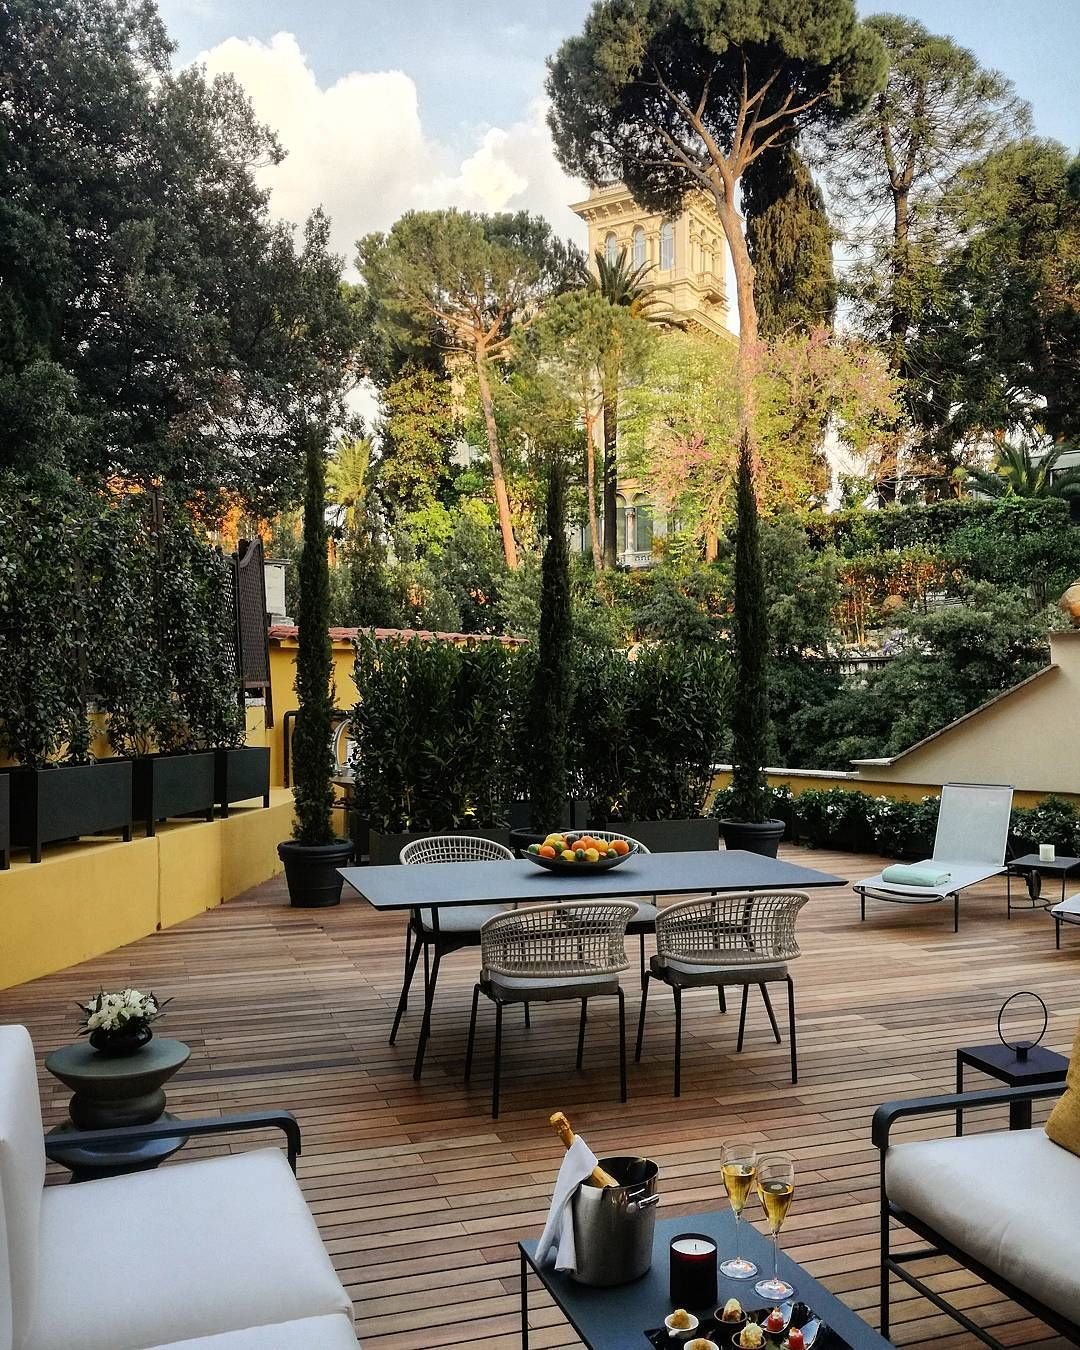 Aperitivo Time In Our Aurora Suite Terrace At Hotel Eden